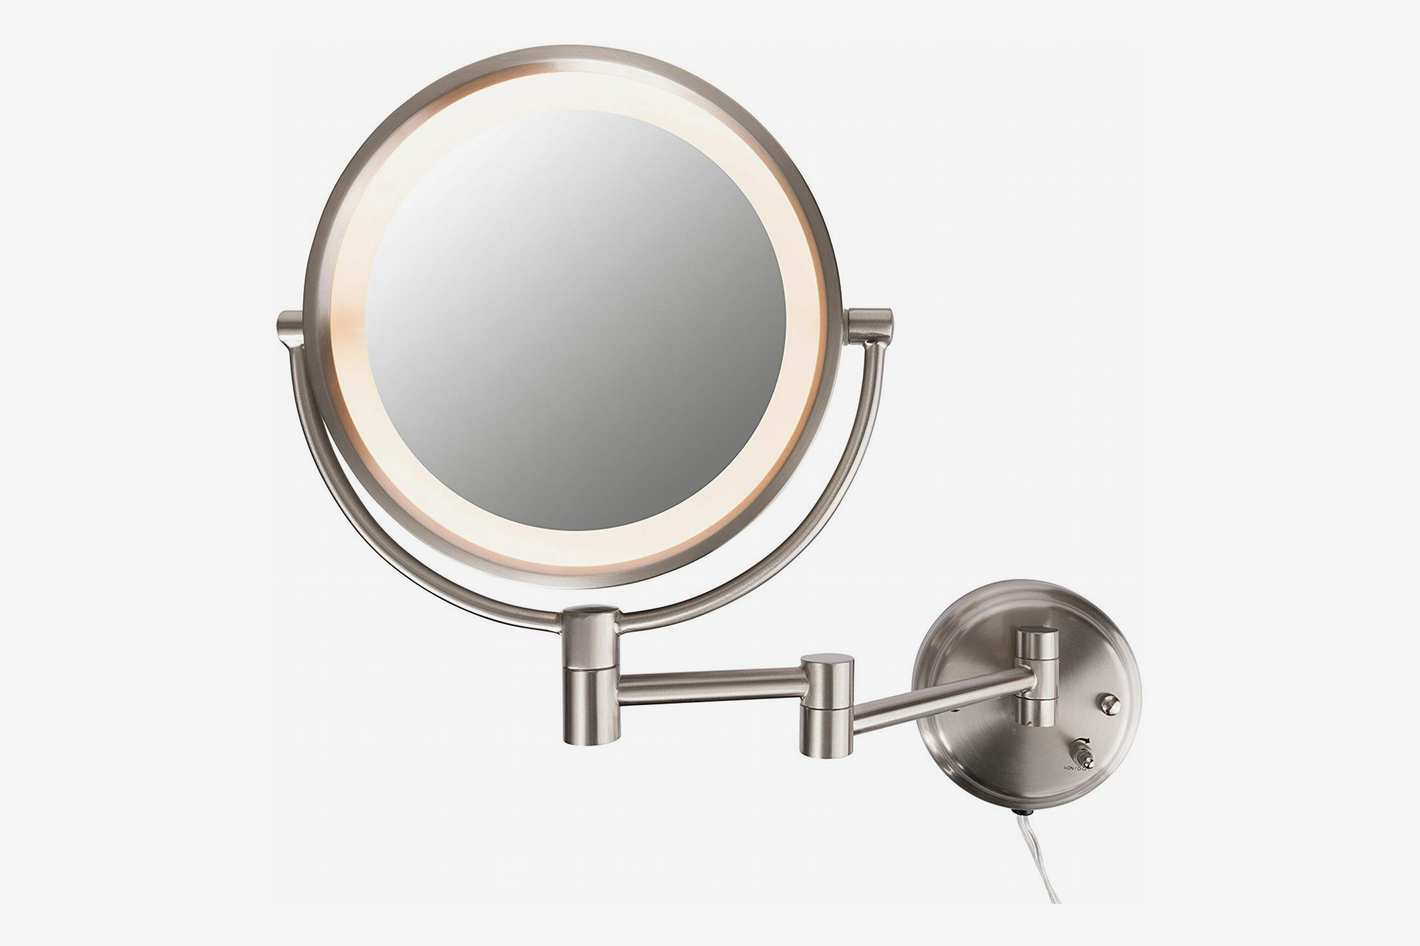 Conair Round Shaped Double-Sided Wall Mount Lighted Makeup Mirror